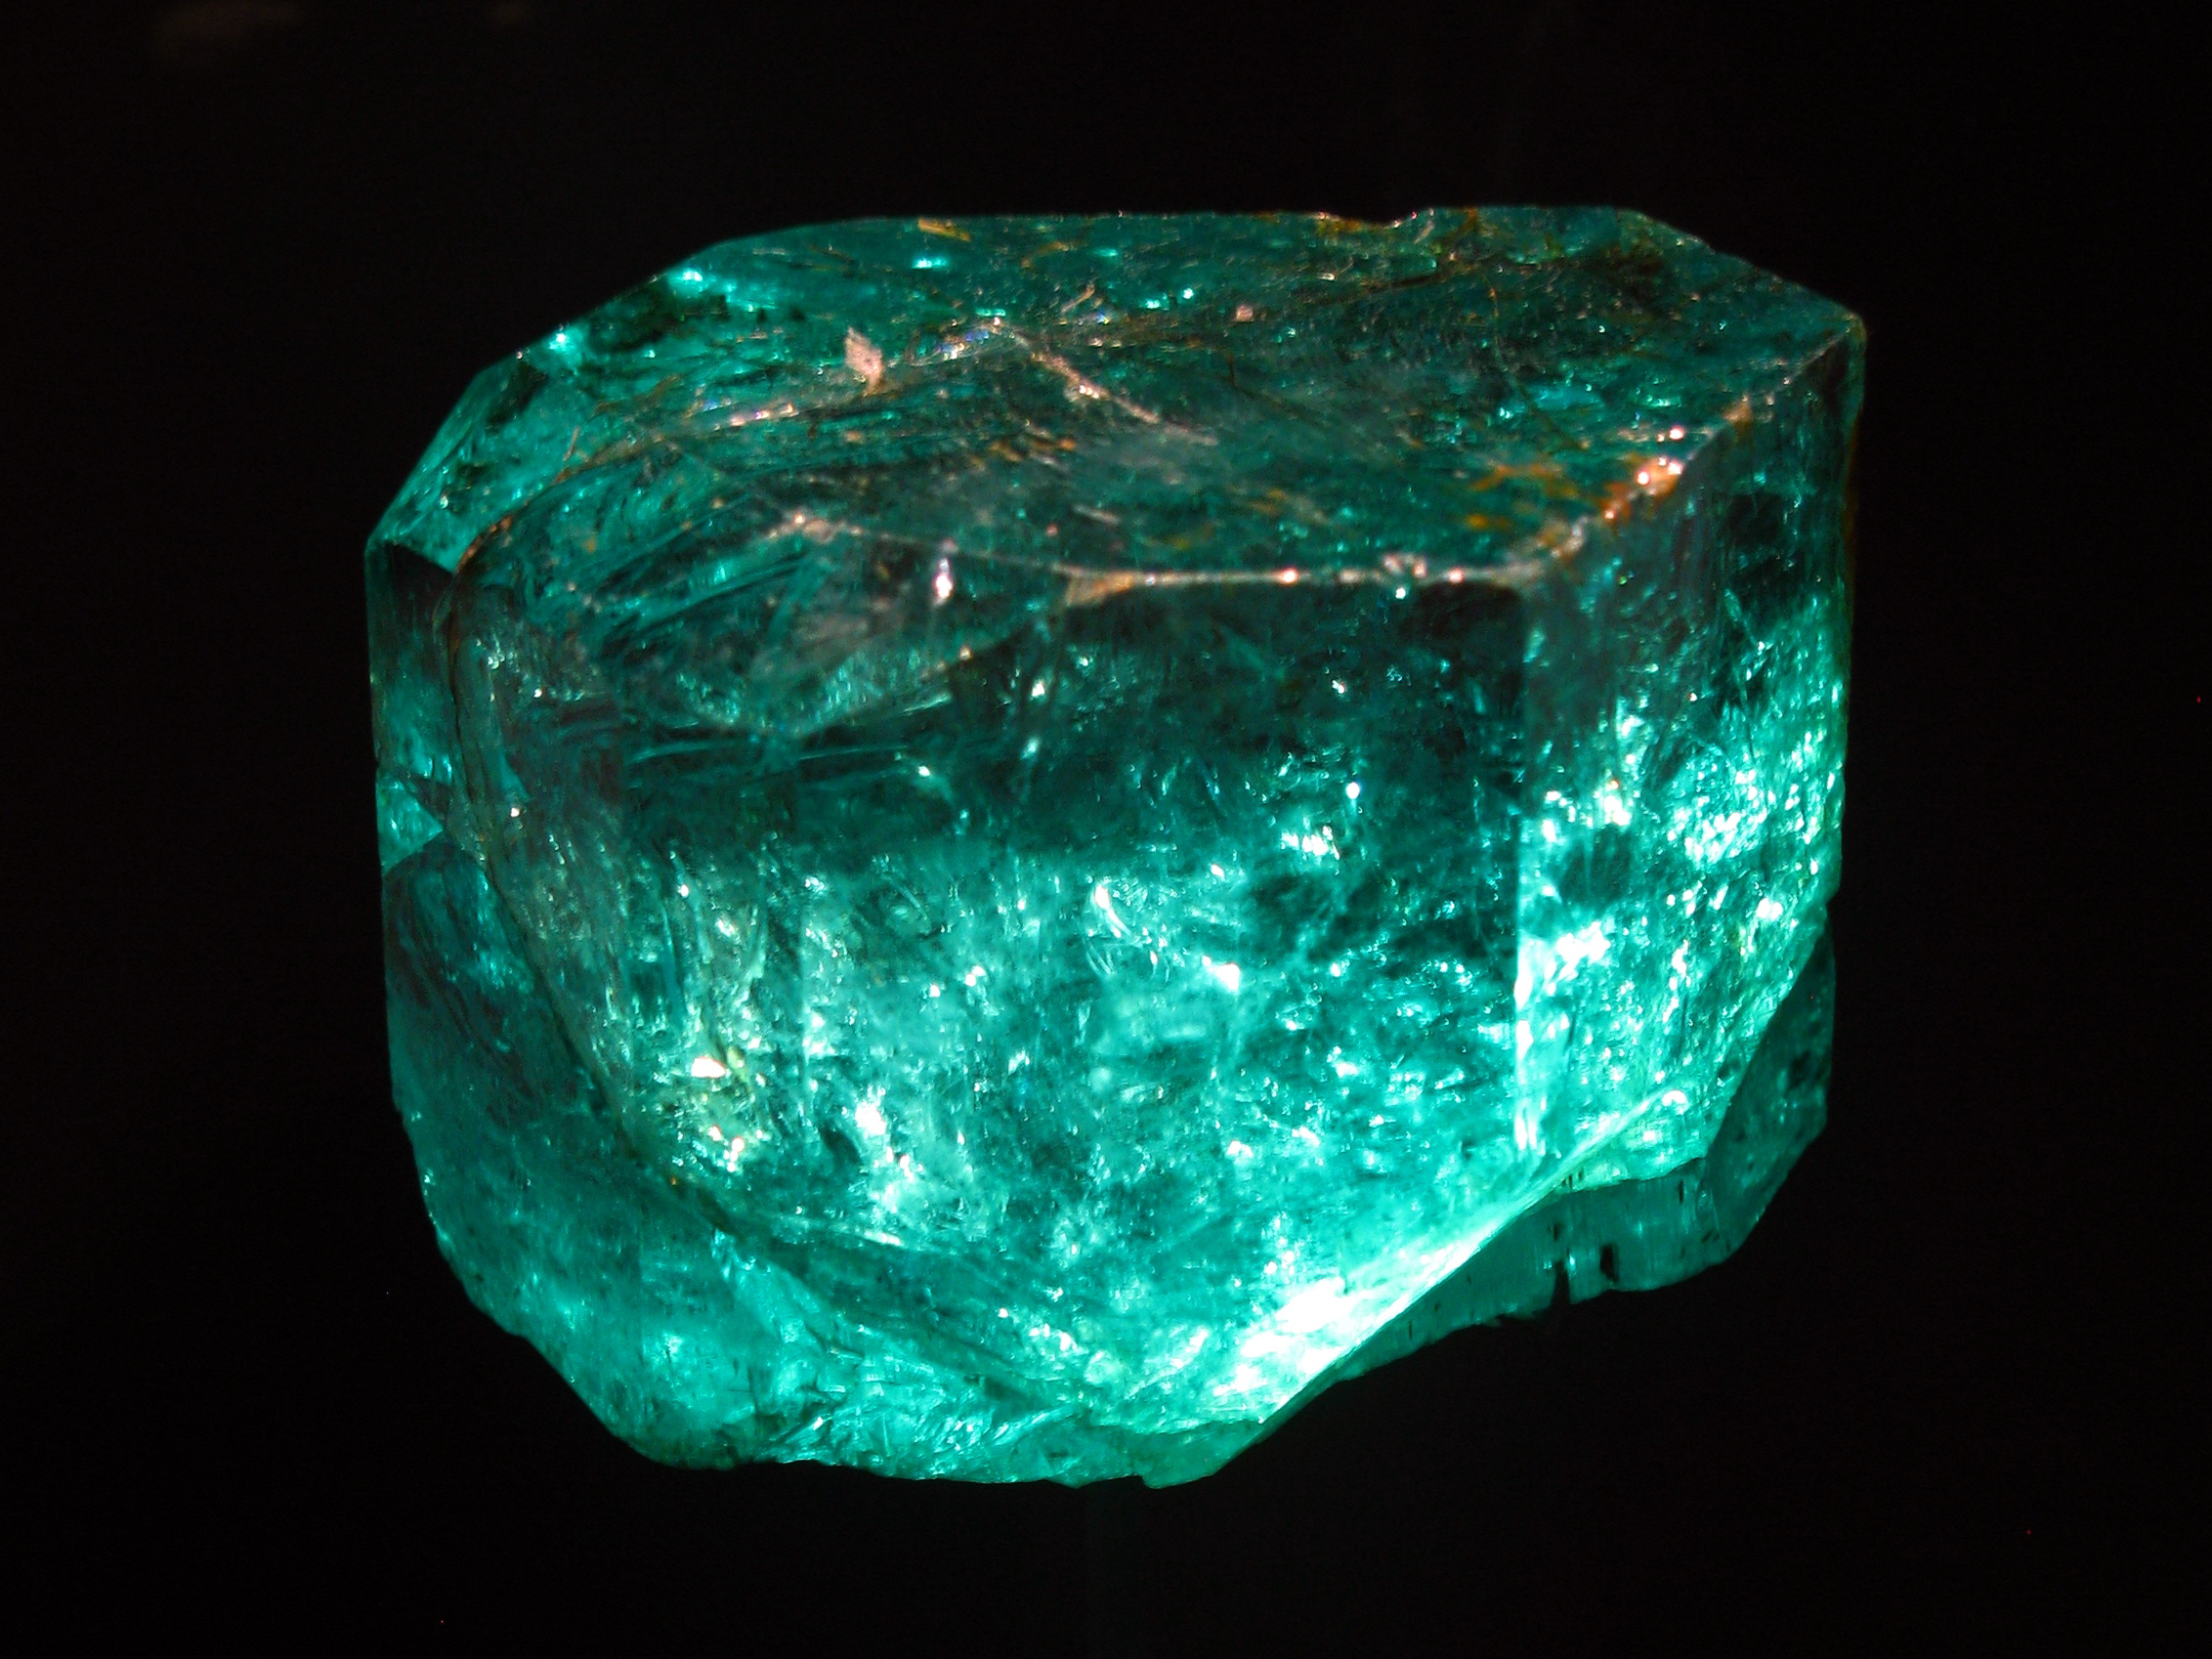 stone buy crystals fine a emerald blog another natural talismans illustrates that planetary the gemstone fb gemstones know example and between difference real online